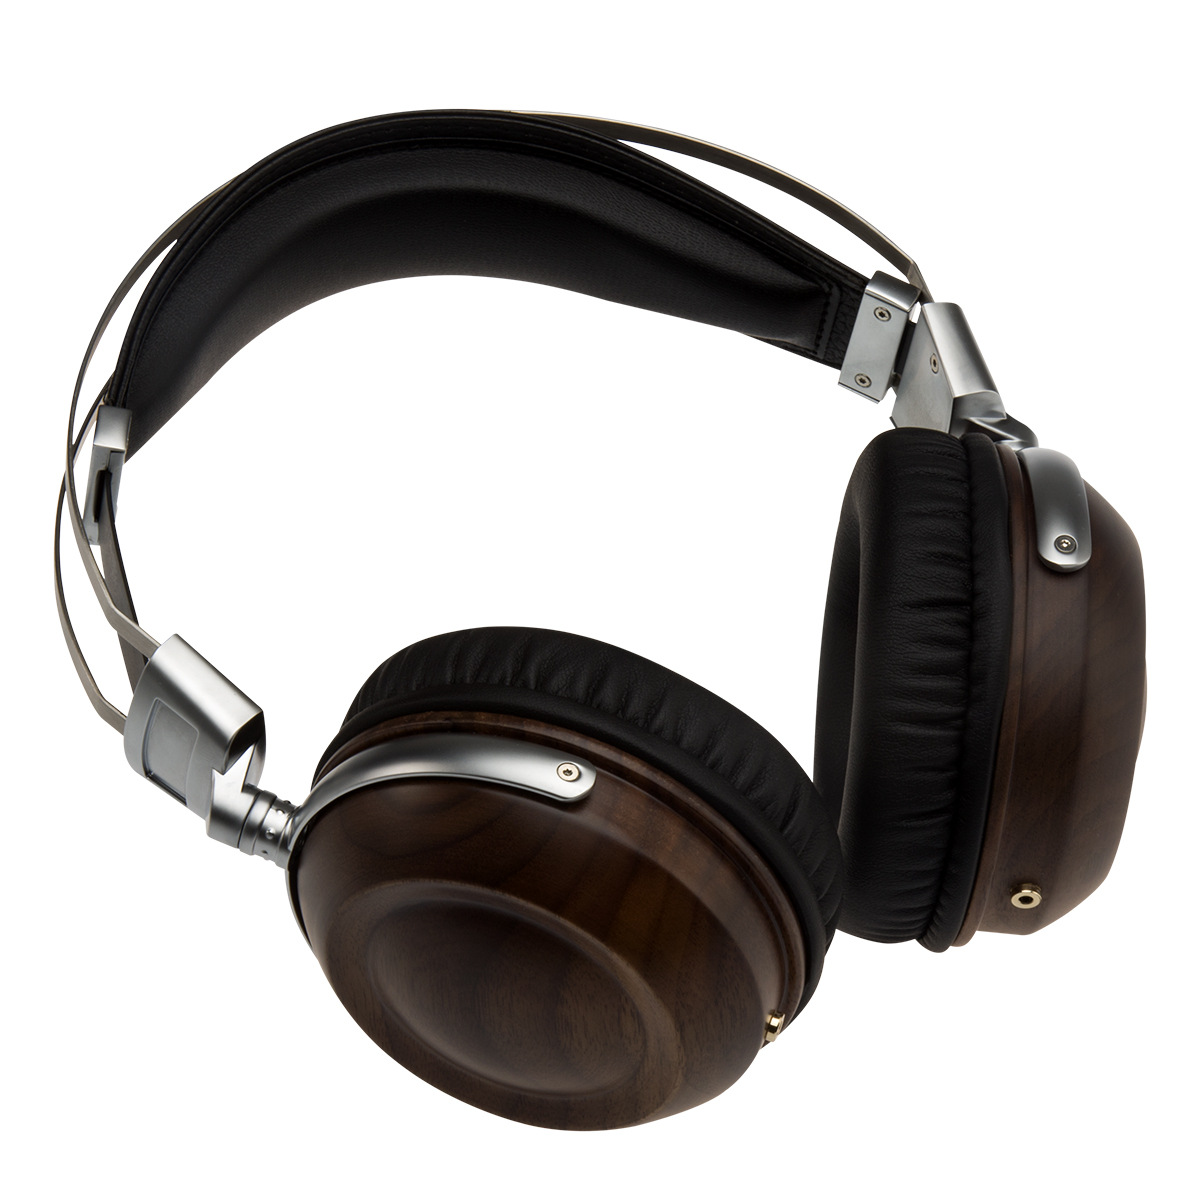 WHP860W High-end Headphones Head-mounted HIFI Walnut Alloy High-fidelity Mobile Computer Headset 3